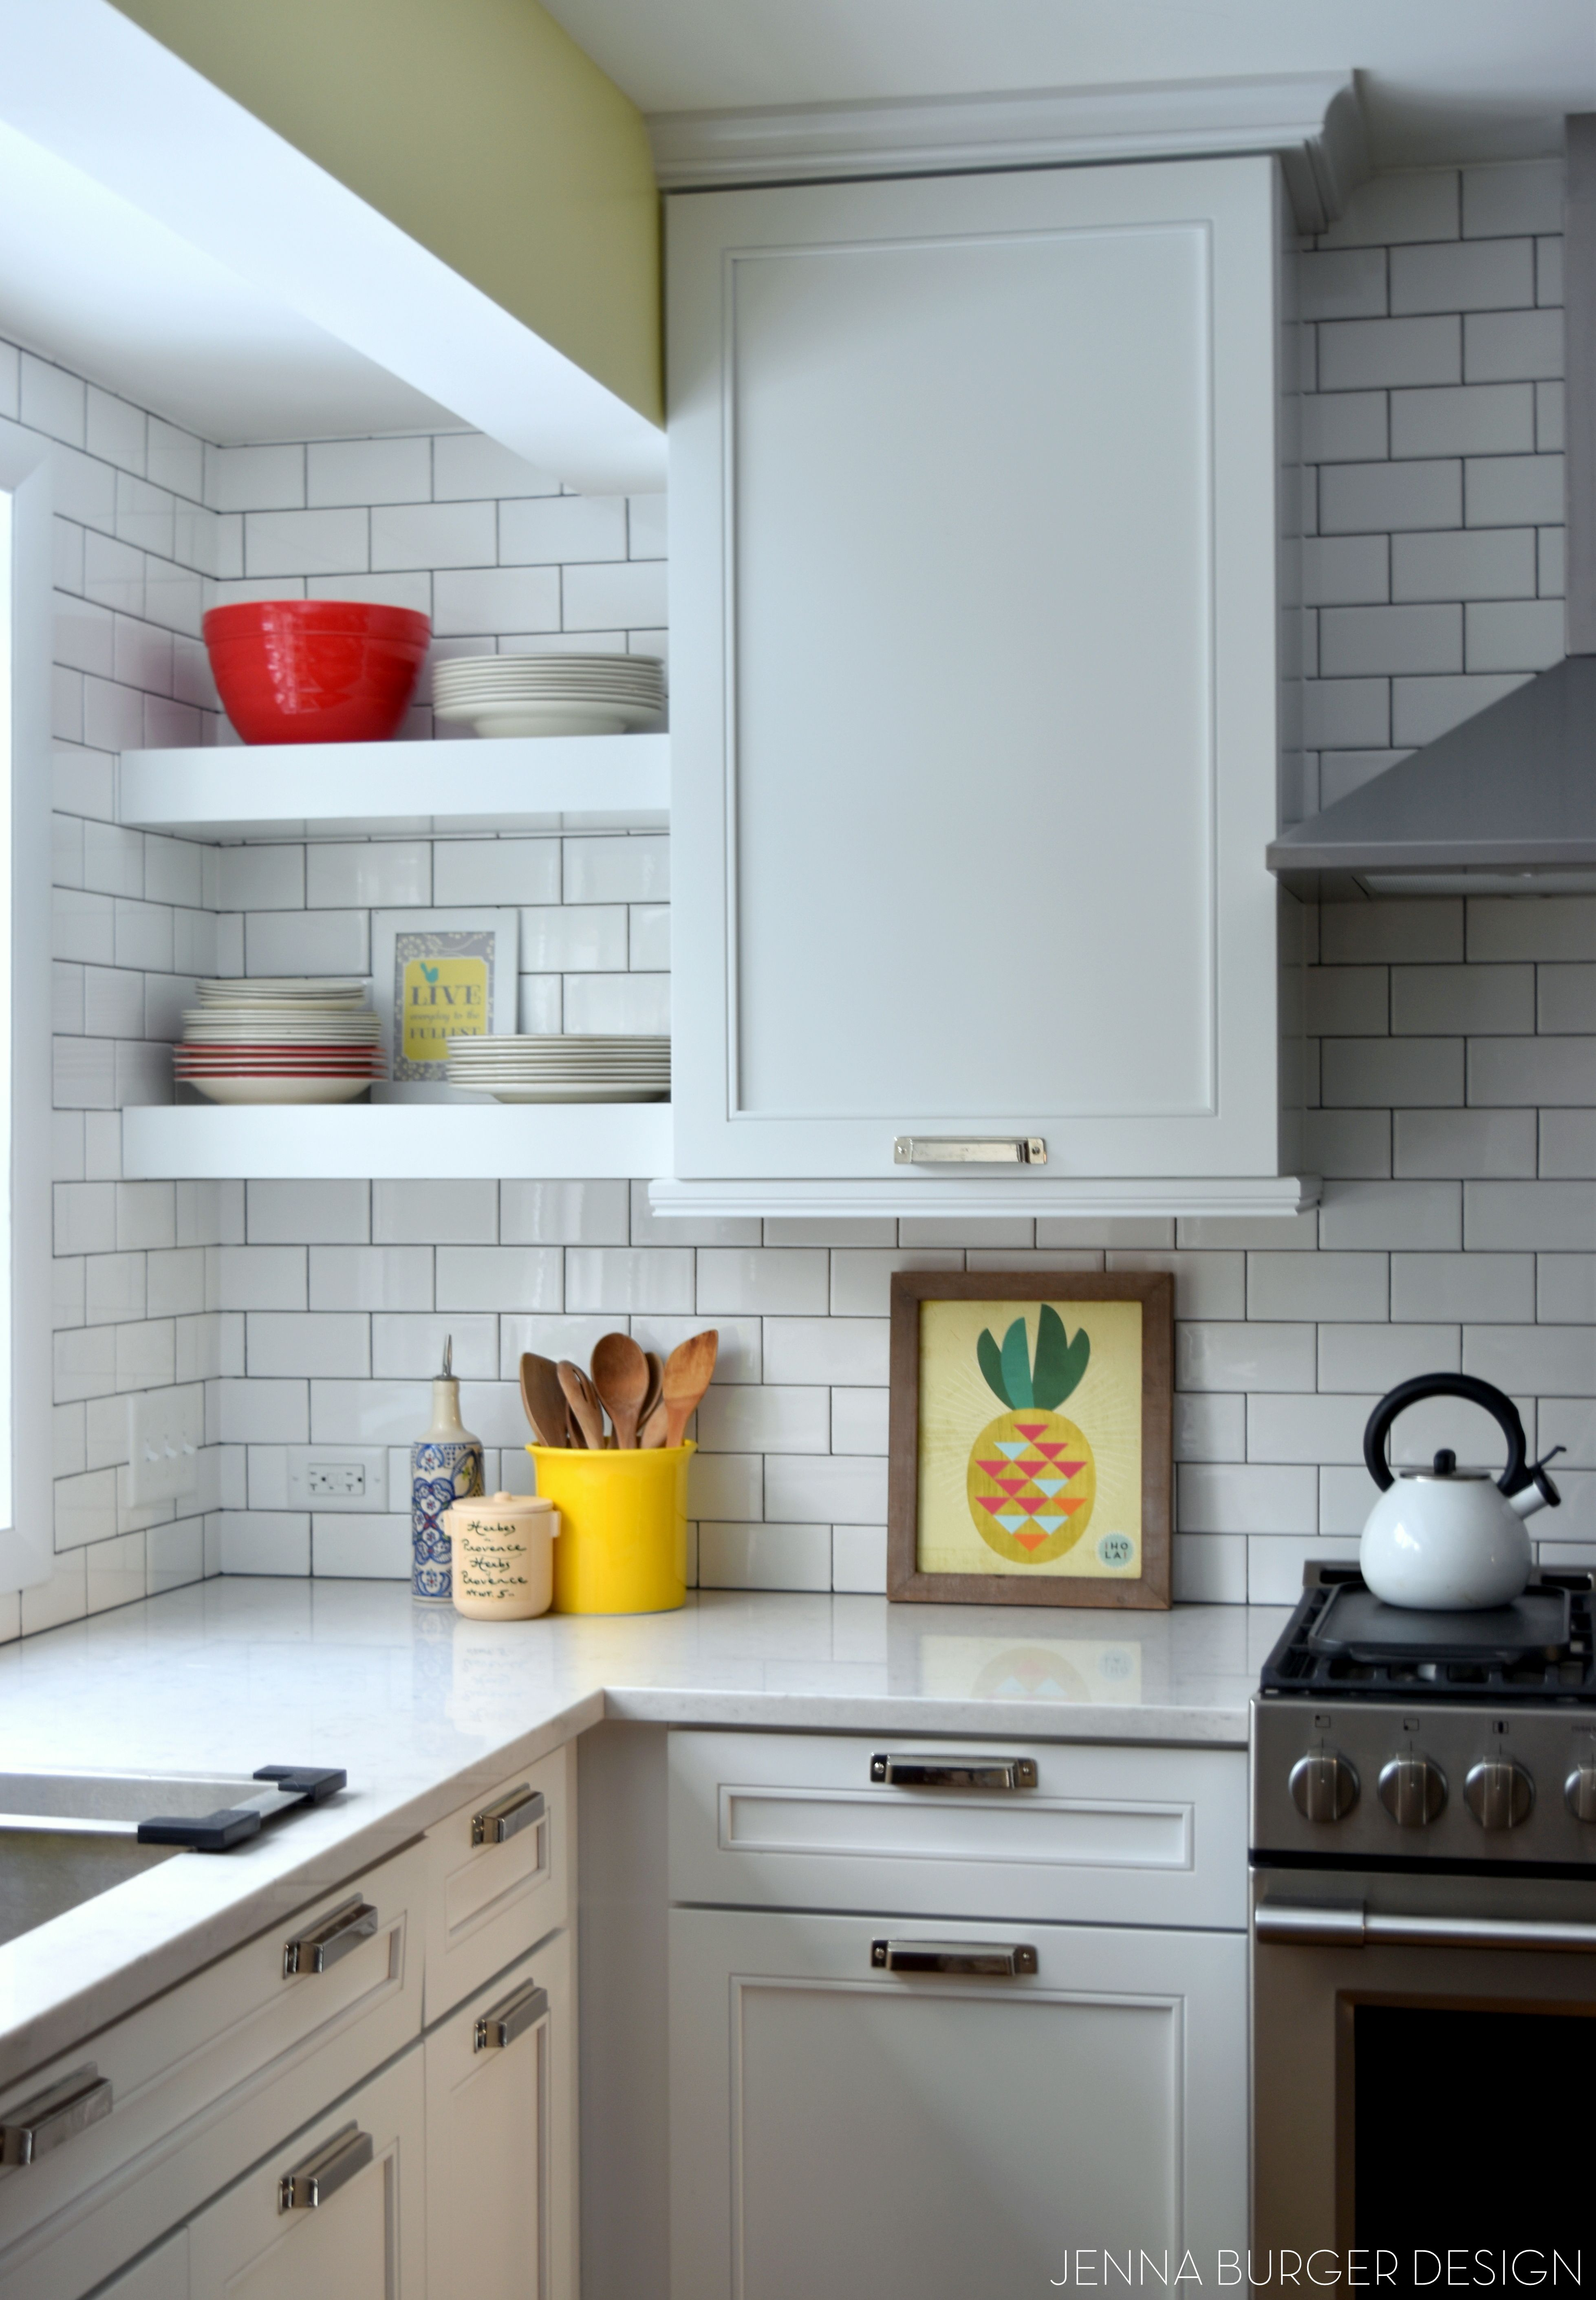 How do you choose the perfect kitchen tile backsplash? There are ...